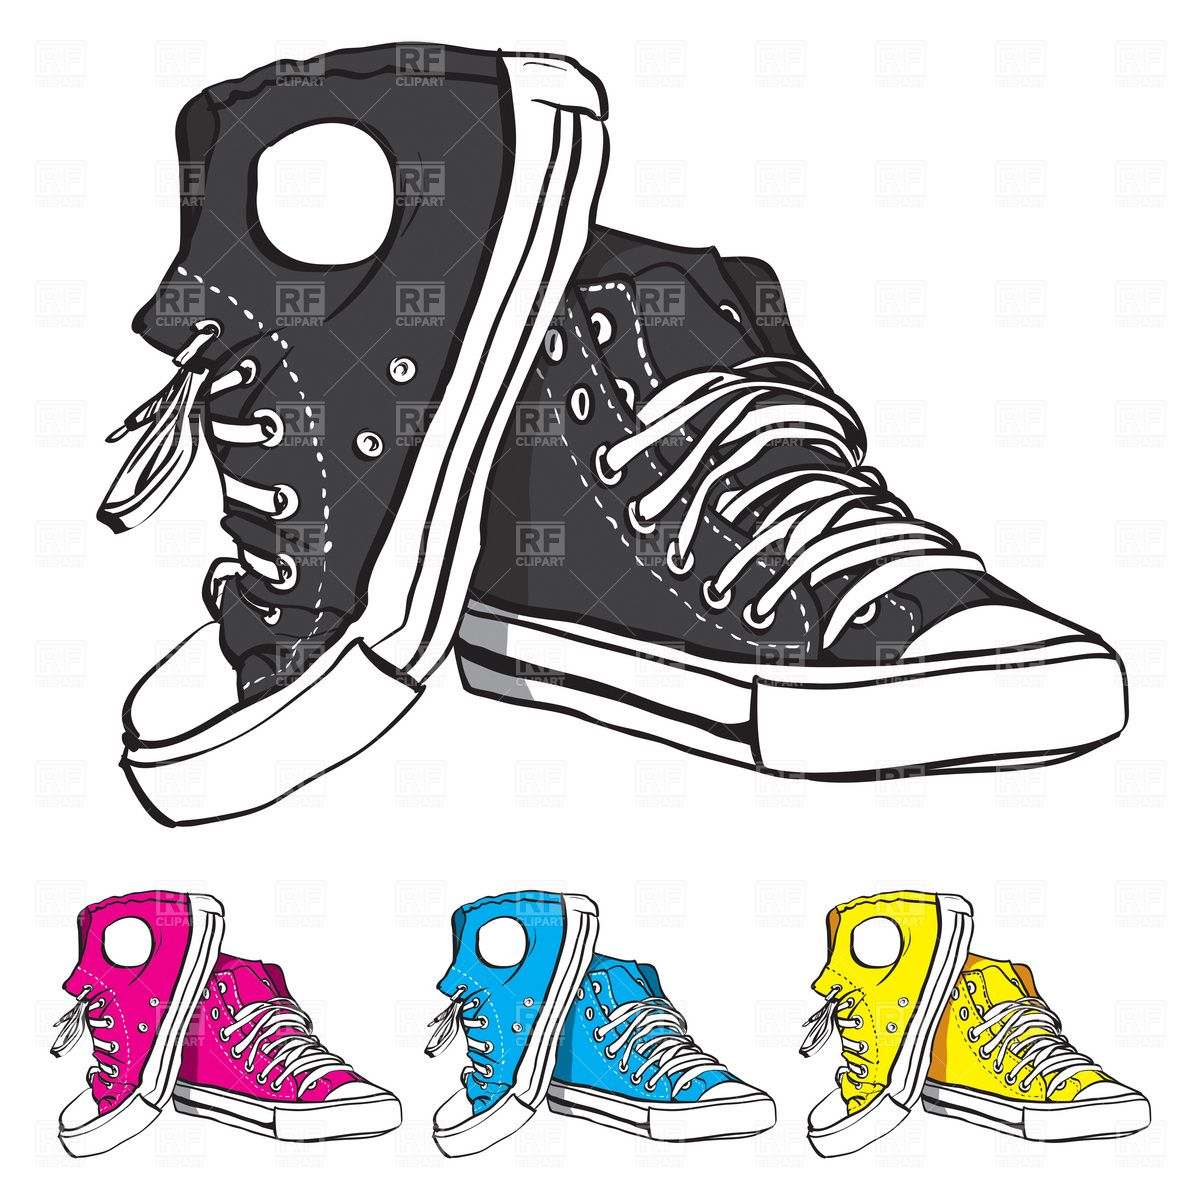 converse shoes black and white font letters design clipart